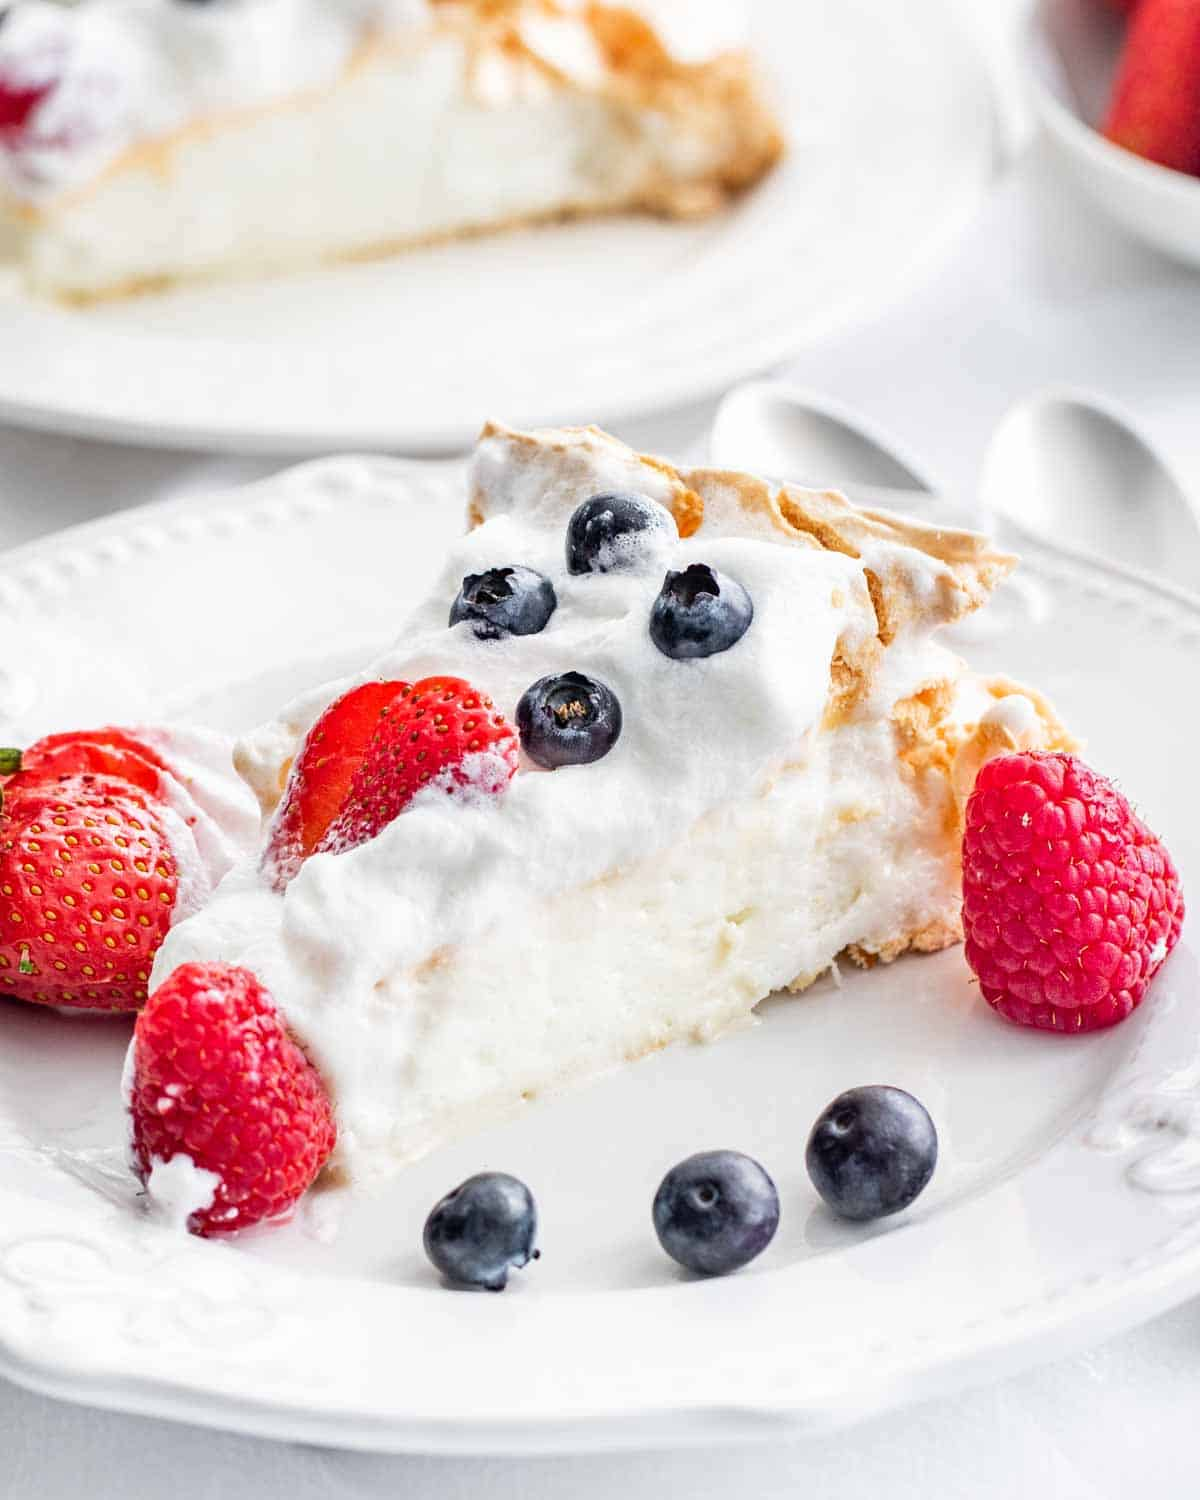 a gorgeous slice of a pavlova topped with whipped cream and berries